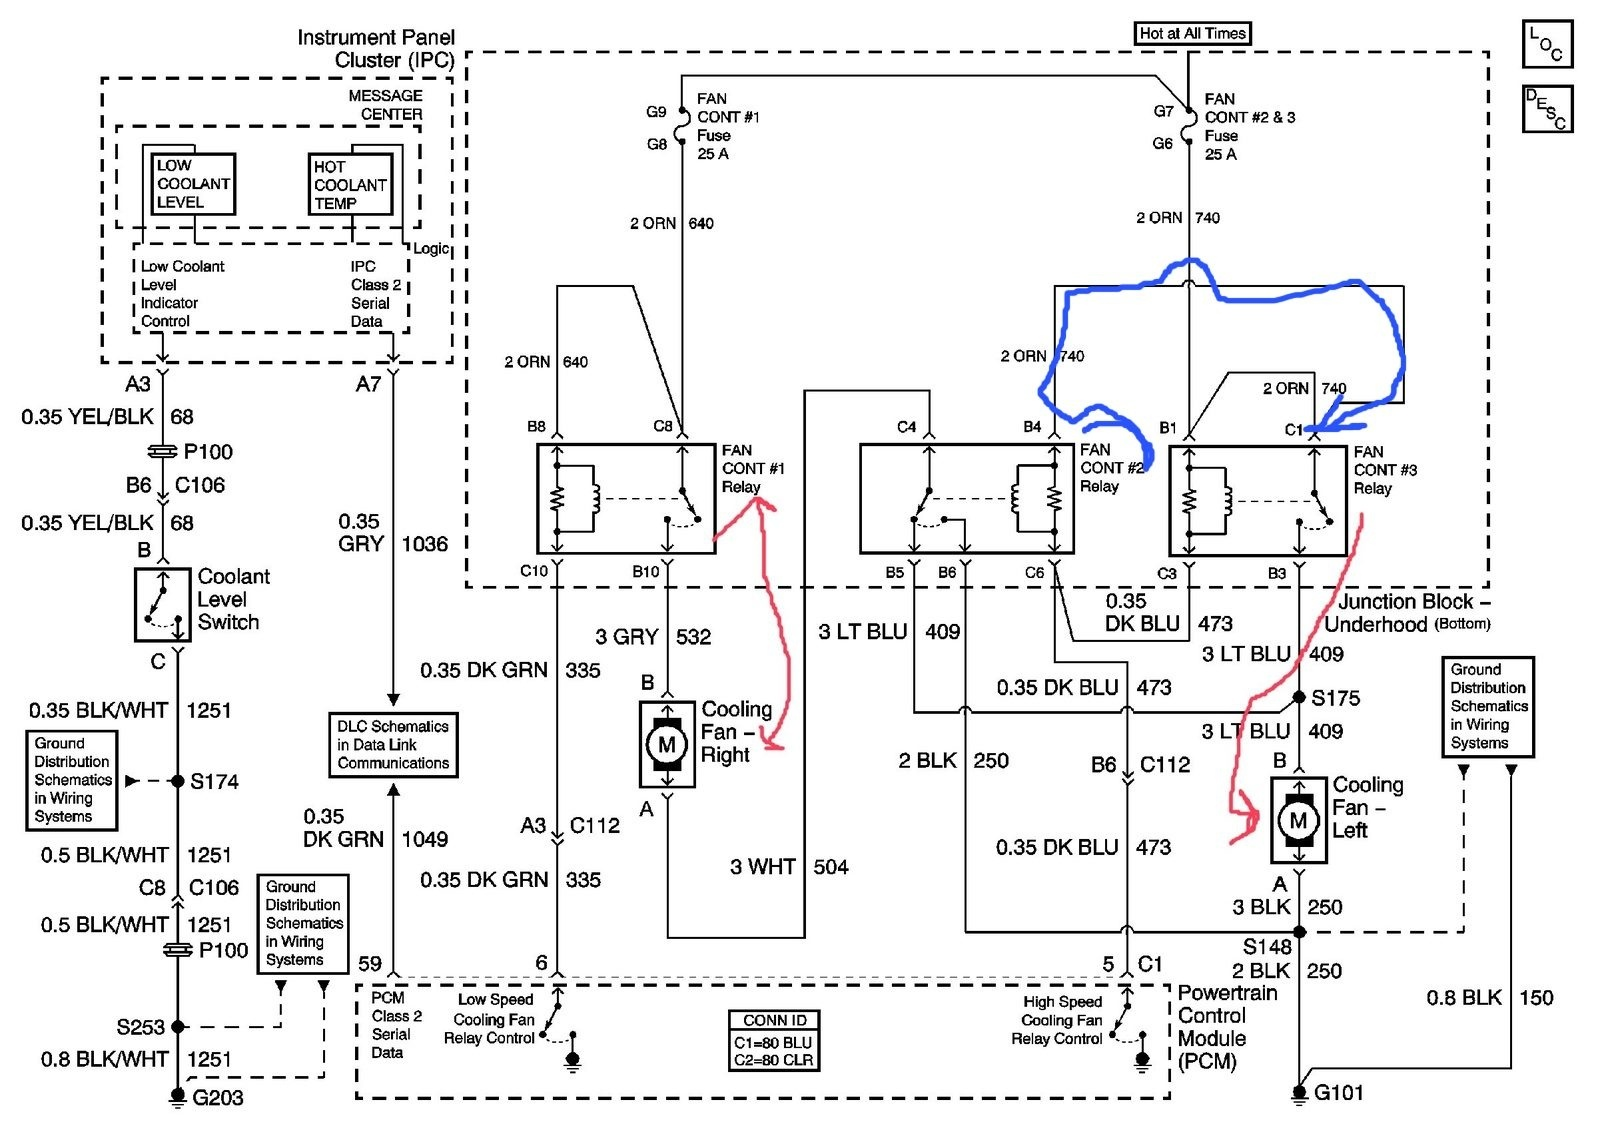 1995 dodge ram 1500 wiring diagram with Discussion T39799 Ds653133 on P0768 together with T1920 Ford Contour 96 Contour 4 Cyl Cranks But Will Not Start likewise 2il0k 10 Pickup Test Wiper Motor Circut 1995 S Wiring Diagram furthermore 99 Accord Hard Lines 3222767 also 4hxkh Help 2003 Ram 4 7 At Stuck Park.